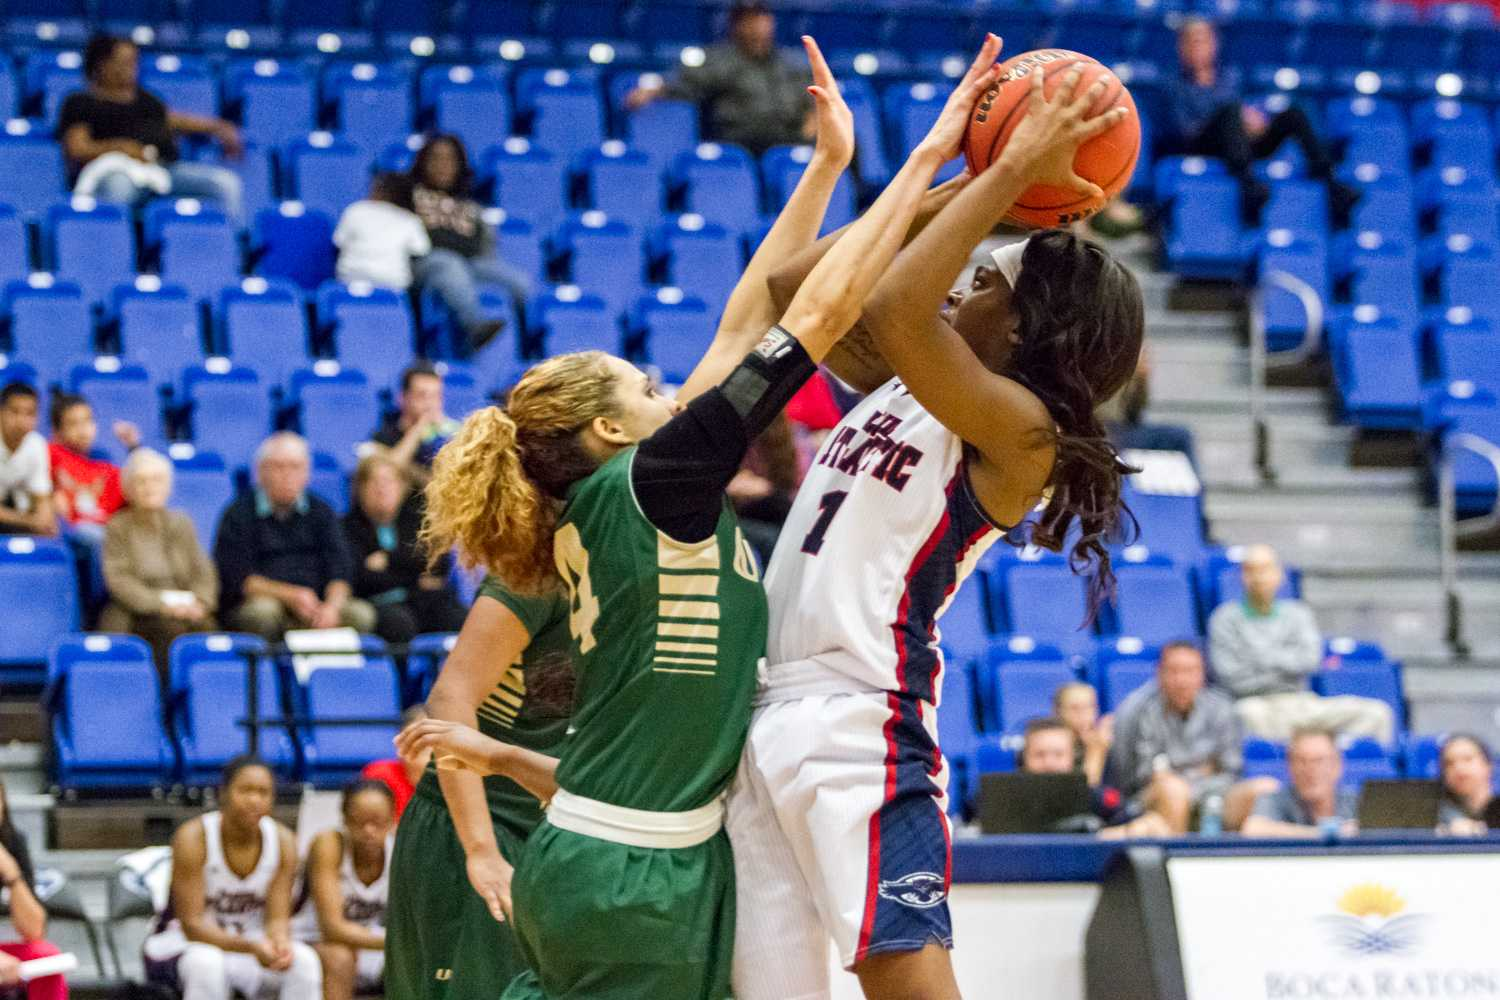 FAU point guard Aaliyah Dotson shoots a contested shot over an UAB defender.